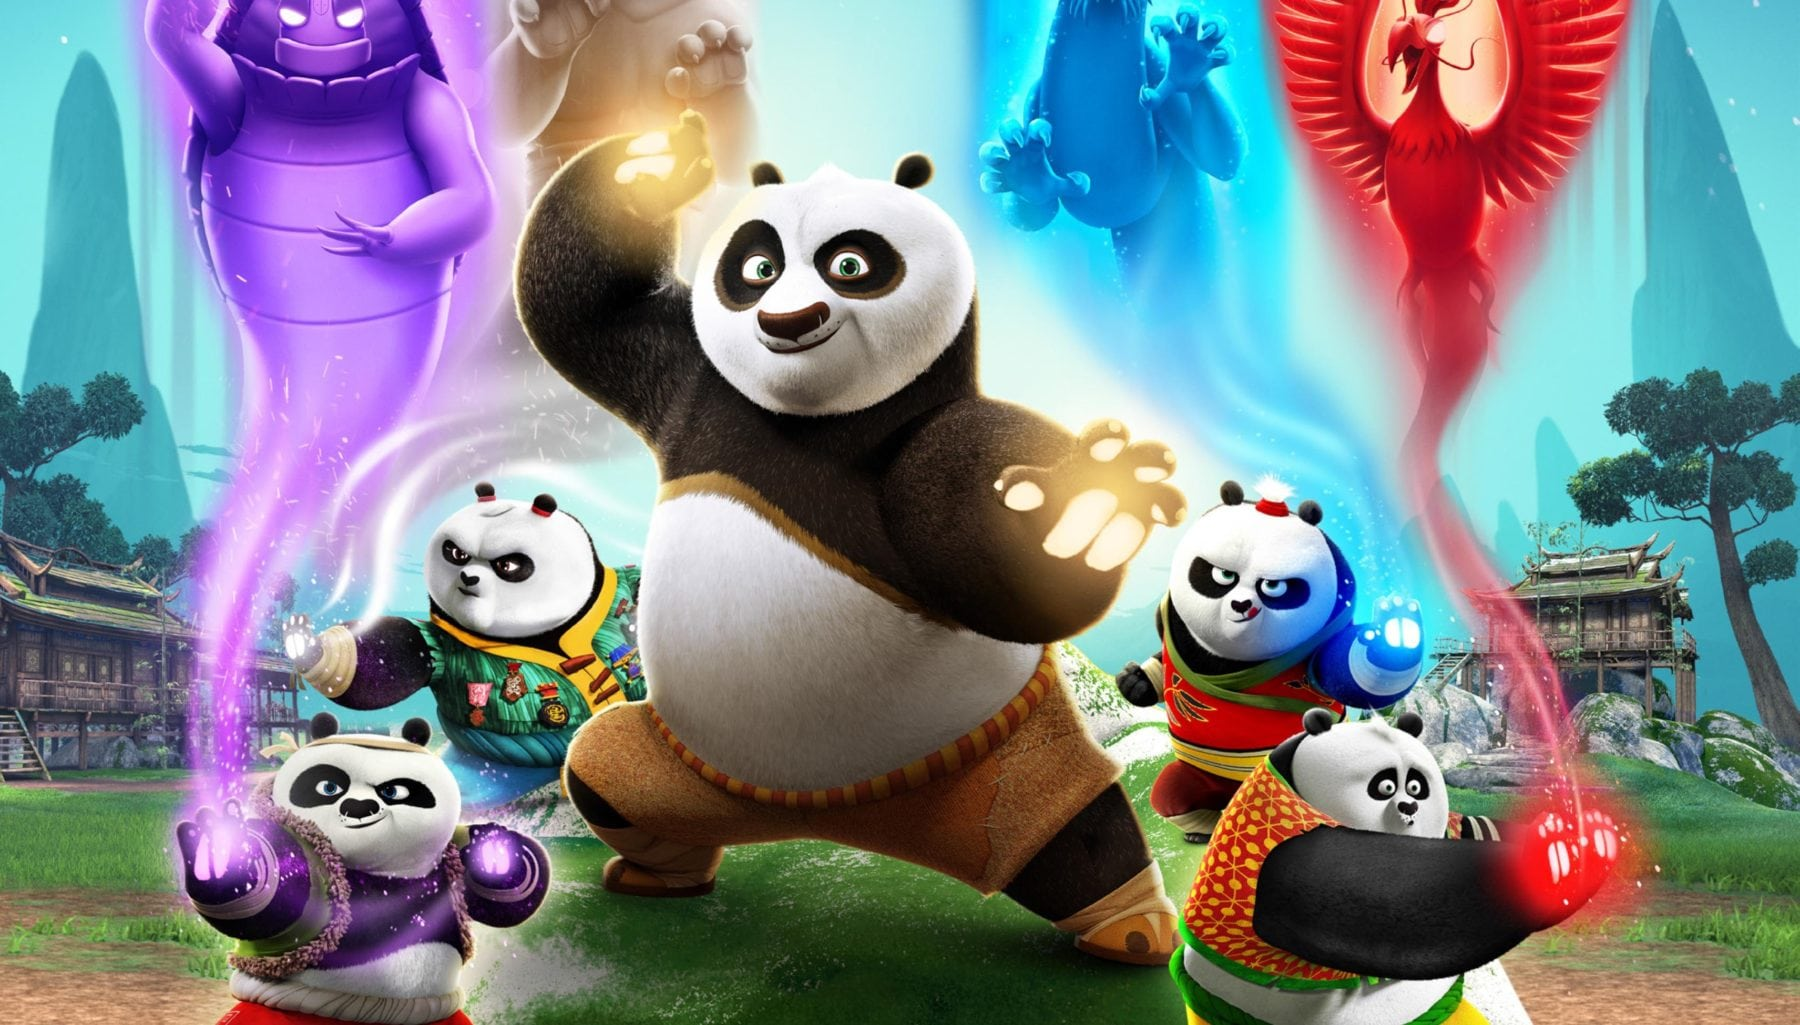 animated series kung fu panda: the paws of destiny gets a poster and